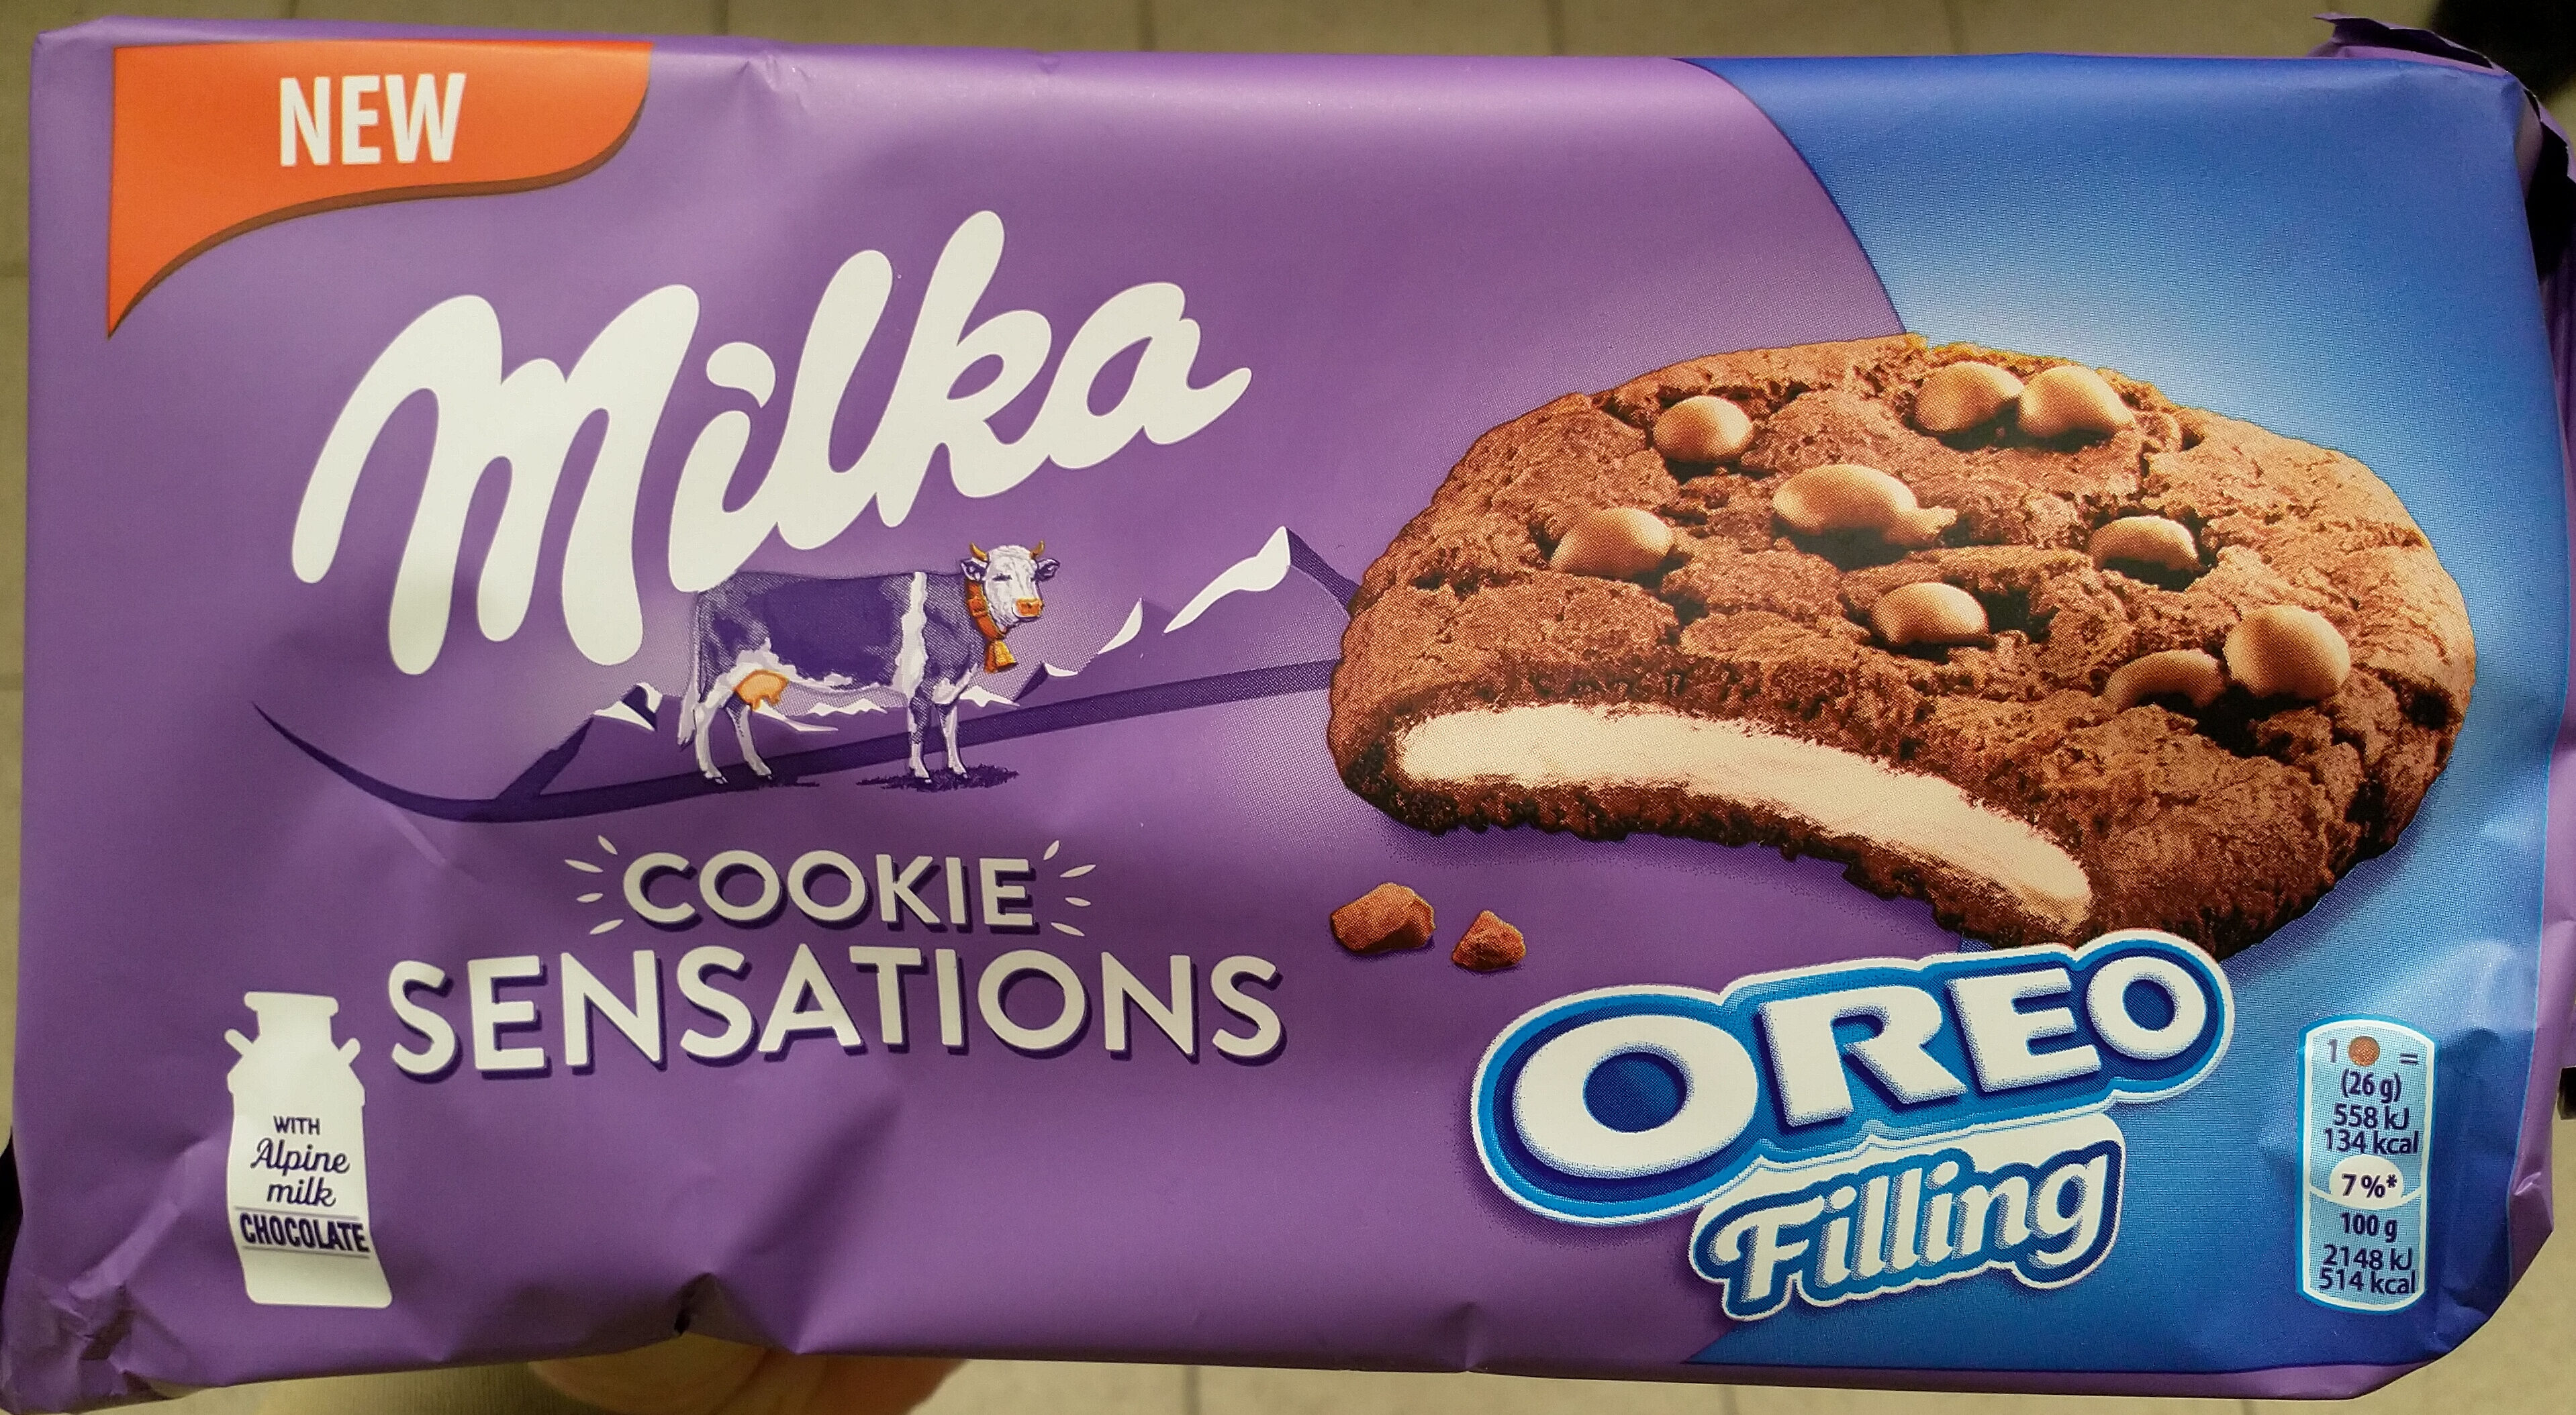 Cookie sensation oreo filling - Product - fr